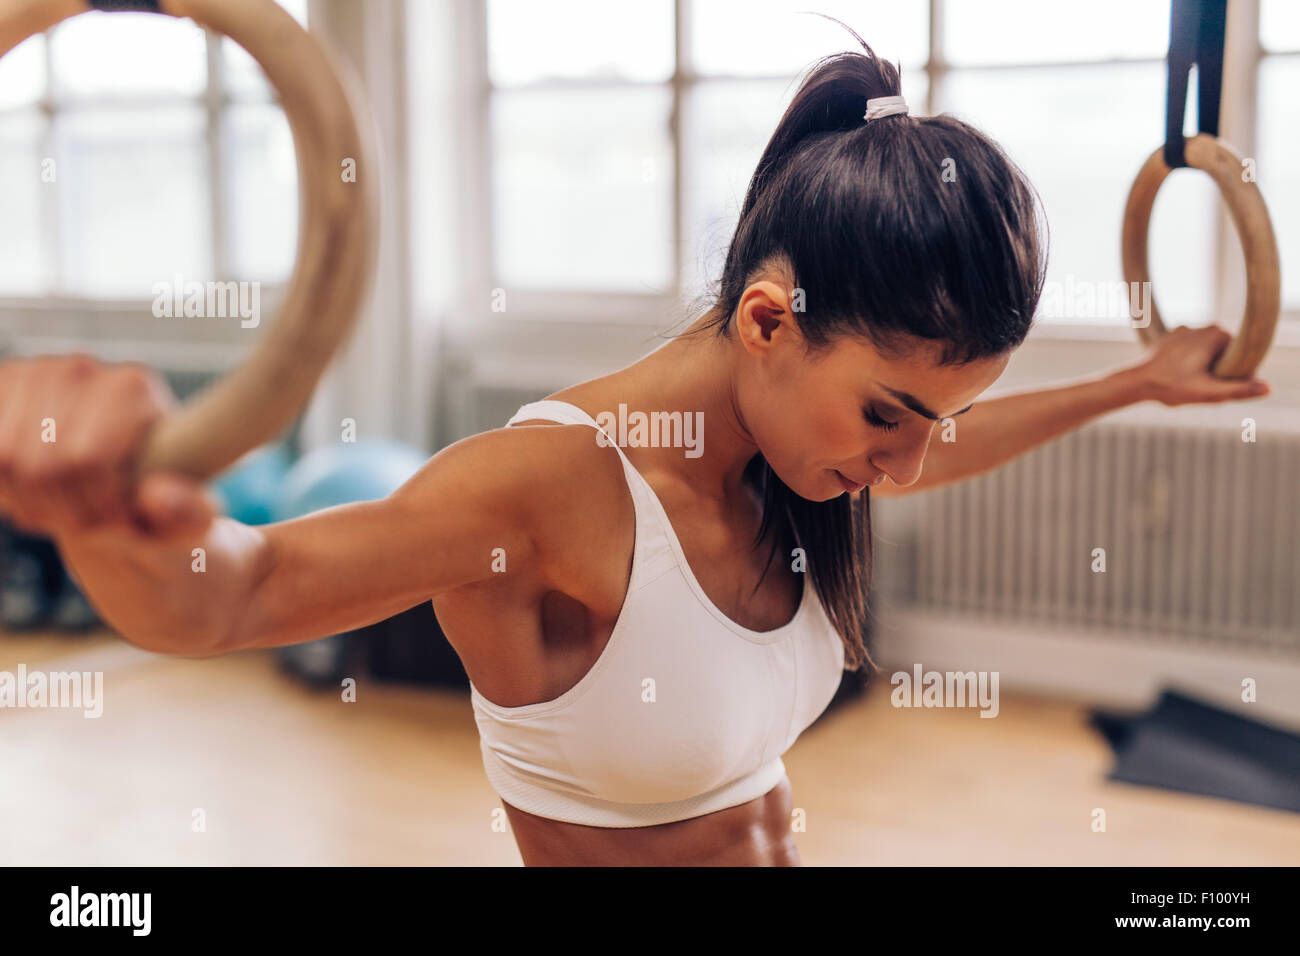 Fit young woman holding gymnast rings at the gym. Strong young woman exercising at gym. - Stock Image